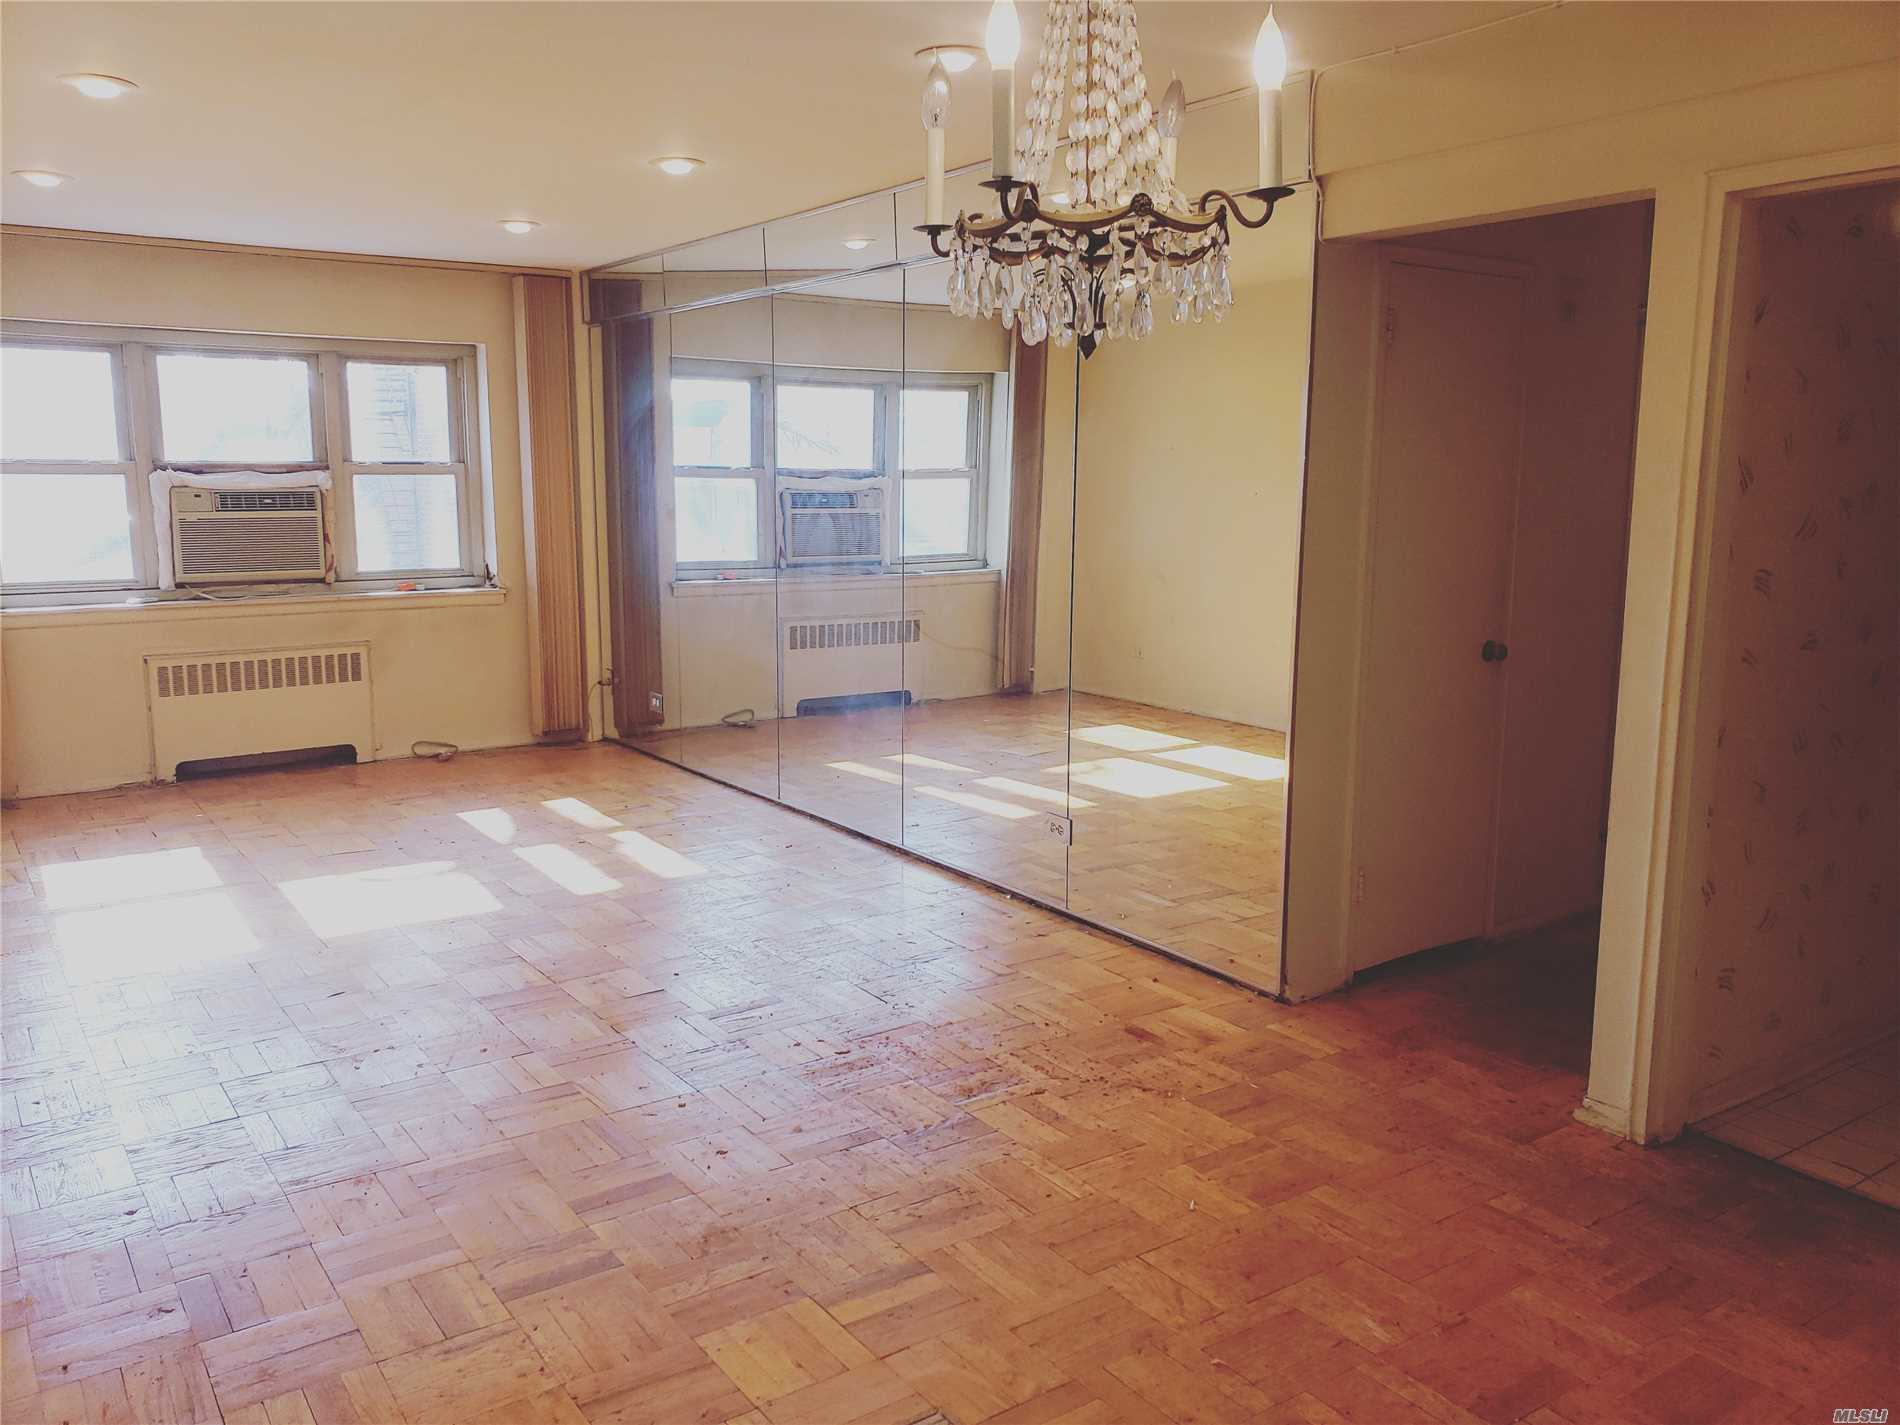 66-10 149th St 11367 - One of Flushing Homes for Sale